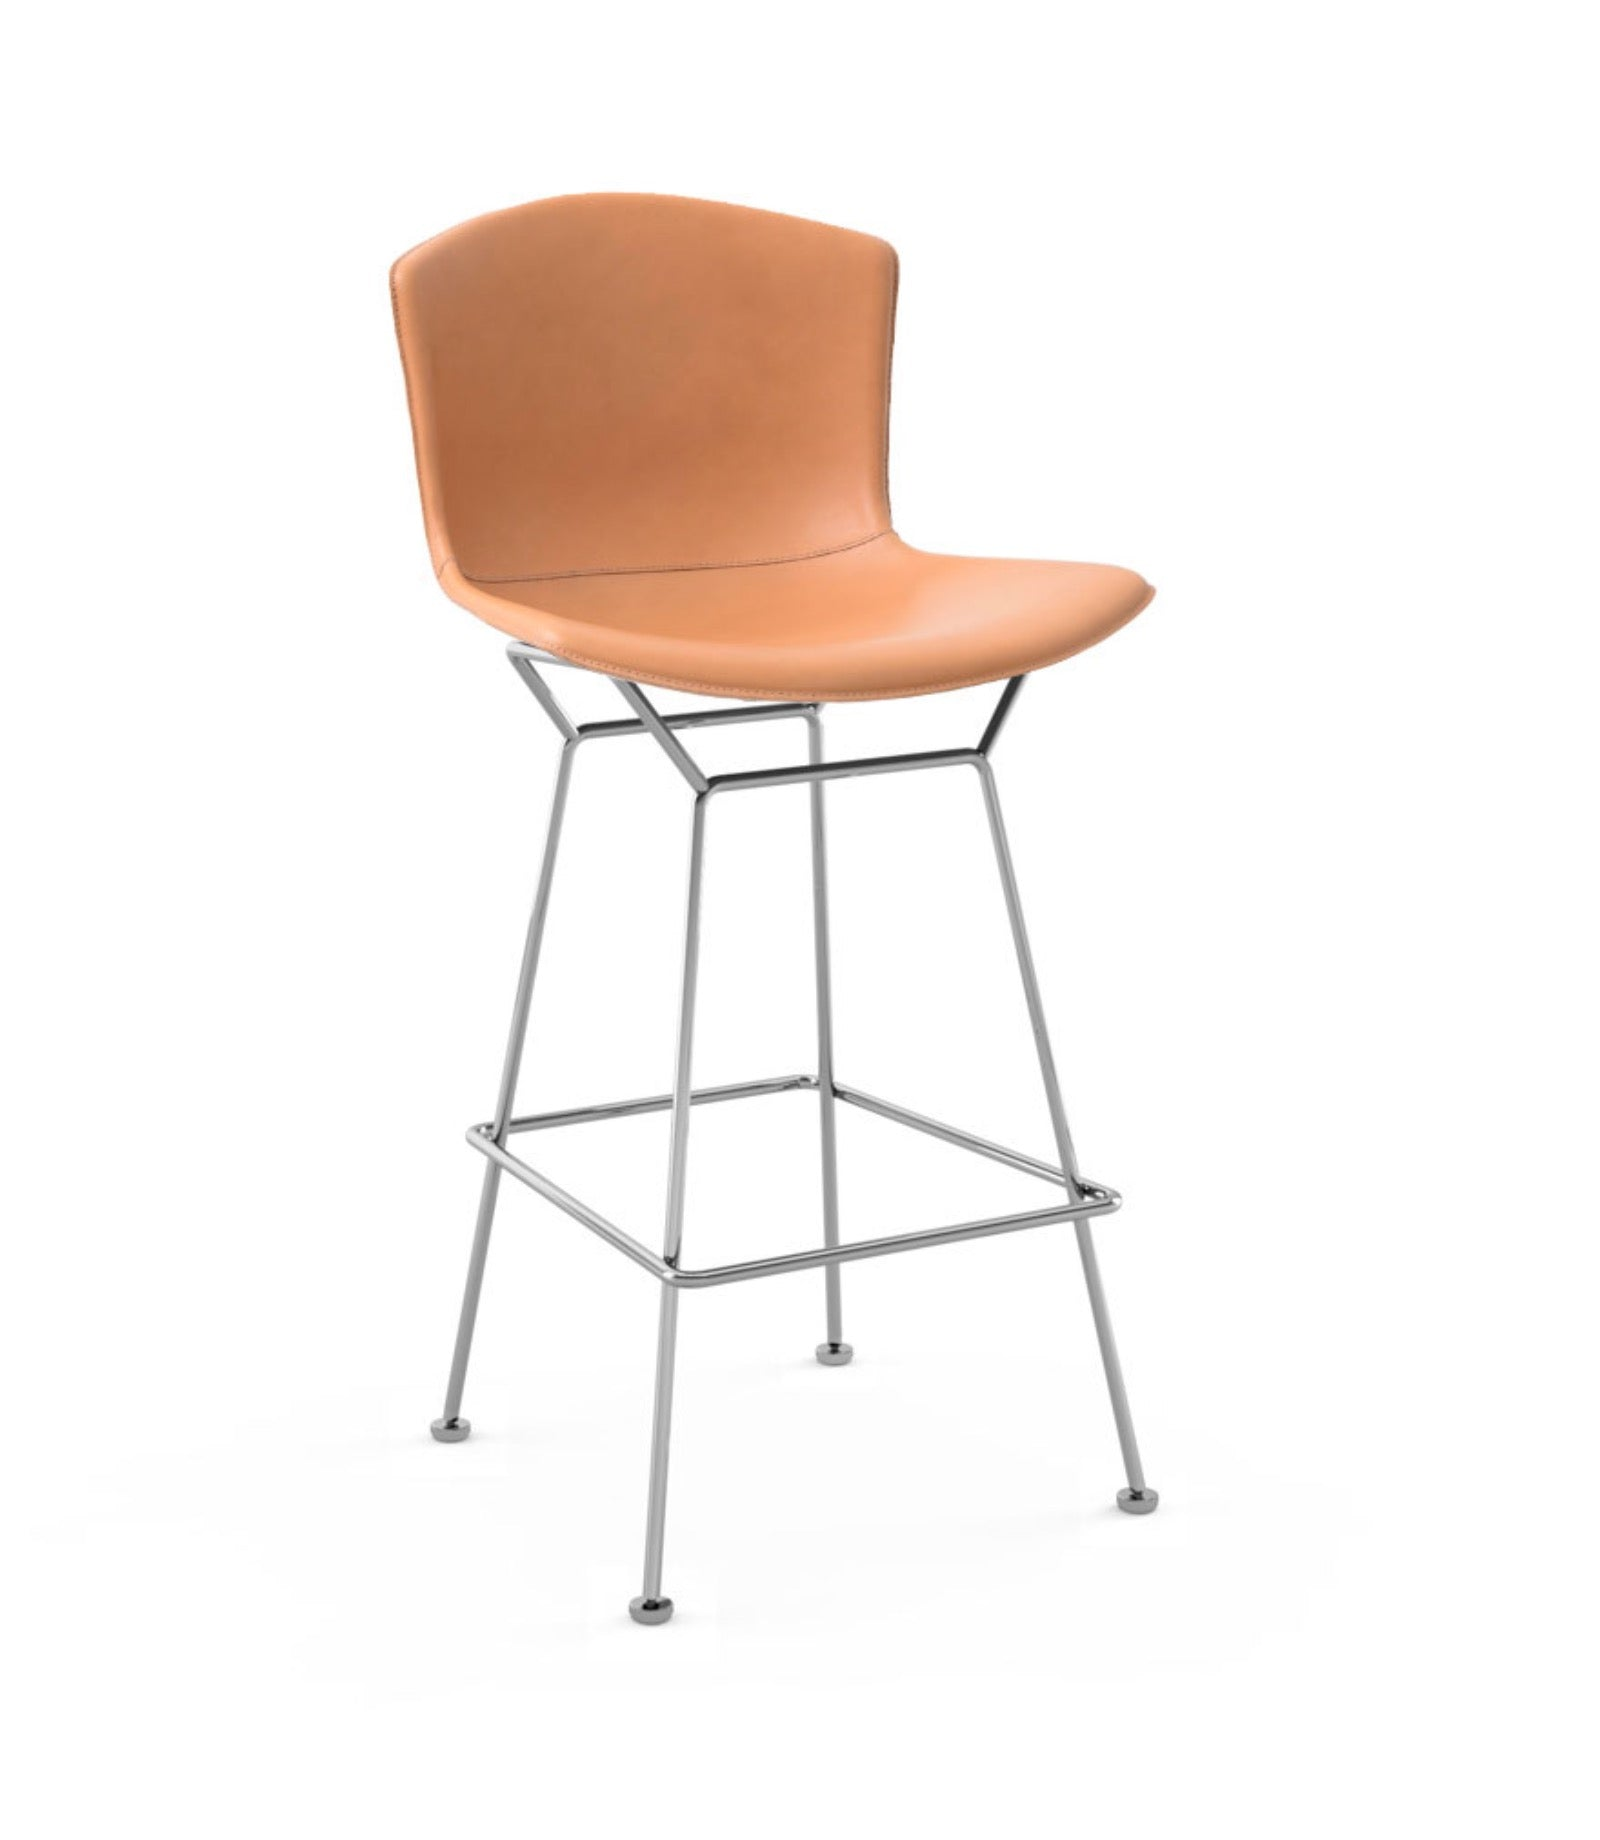 Bertoia Bar Stool in Cowhide